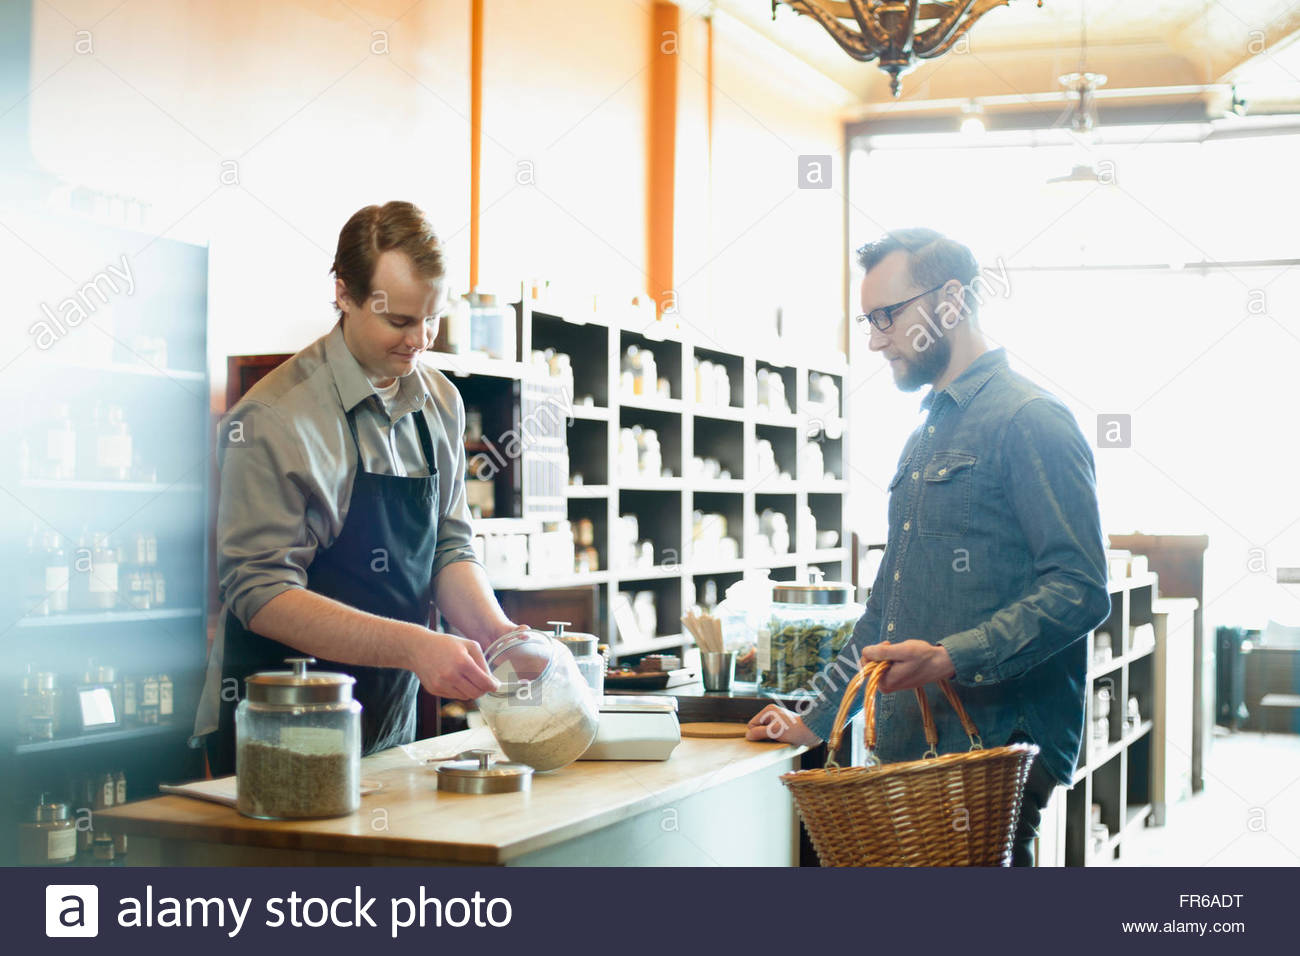 merchant measuring product at retail spice store - Stock Image